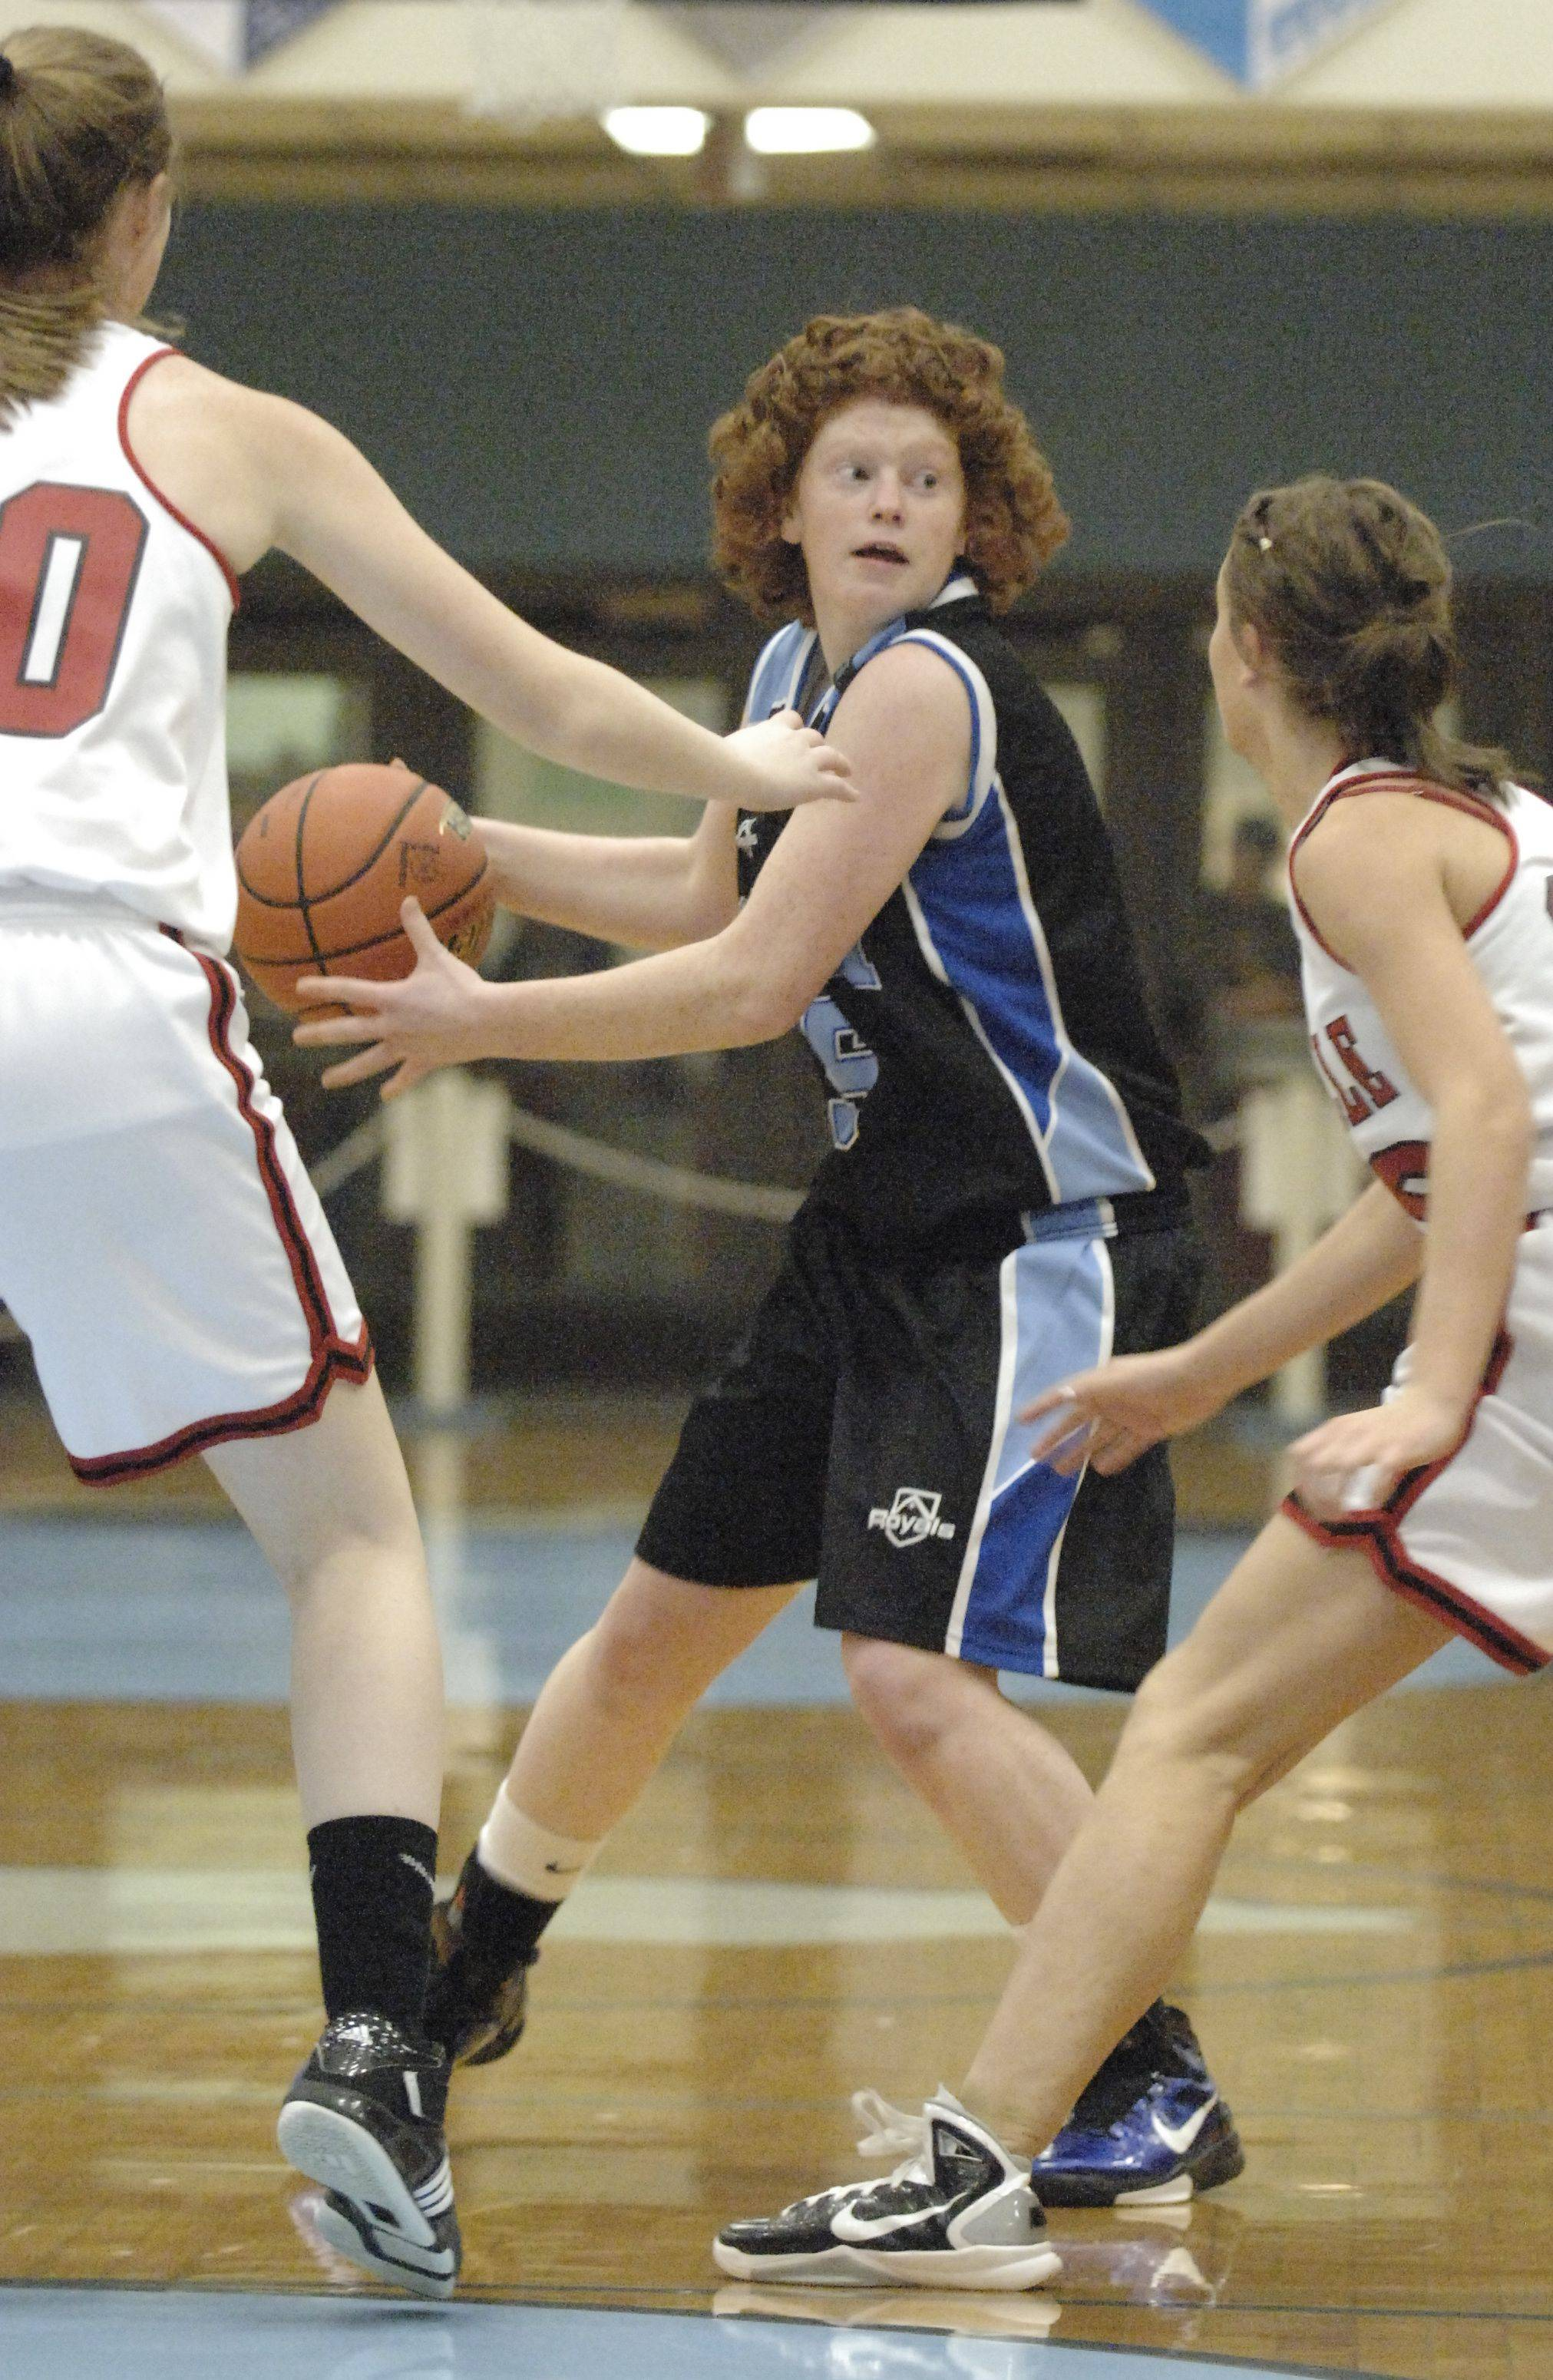 Images from the Rosary vs. Yorkville girls basketball game Tuesday, February 15, 2011.